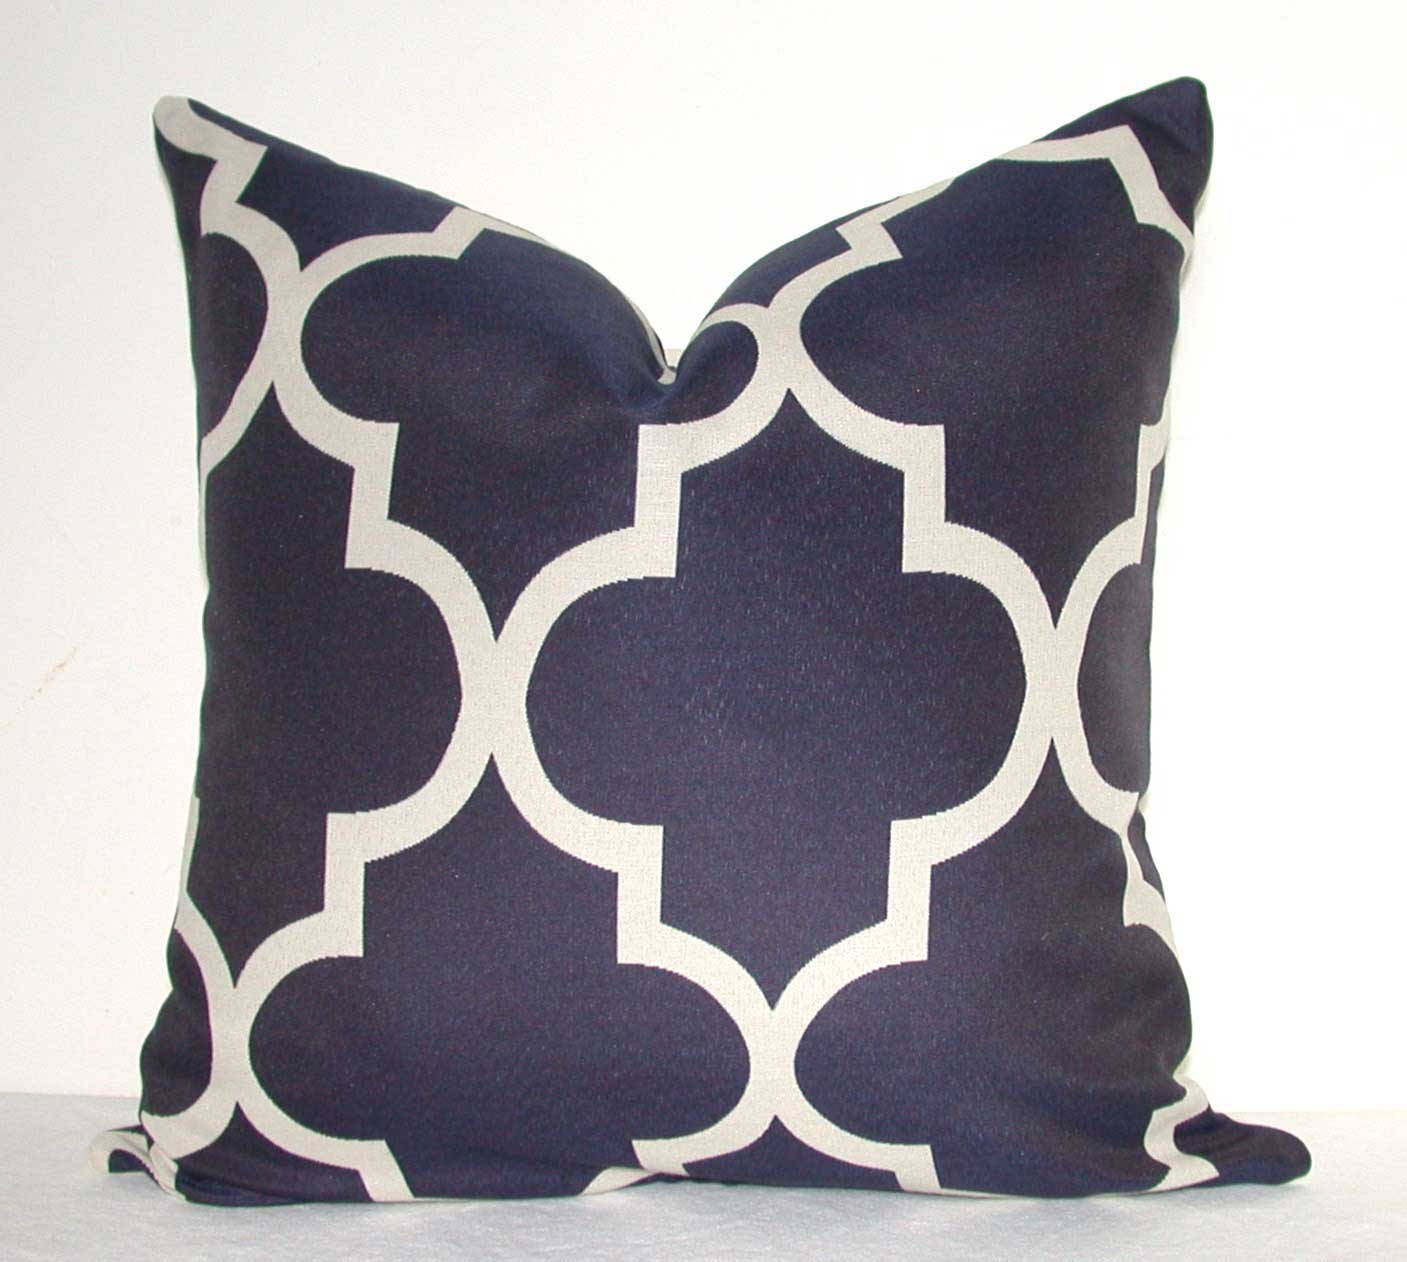 Decorative Pillows For Blue Couch : Accent Pillows For Sofa Feel The Home